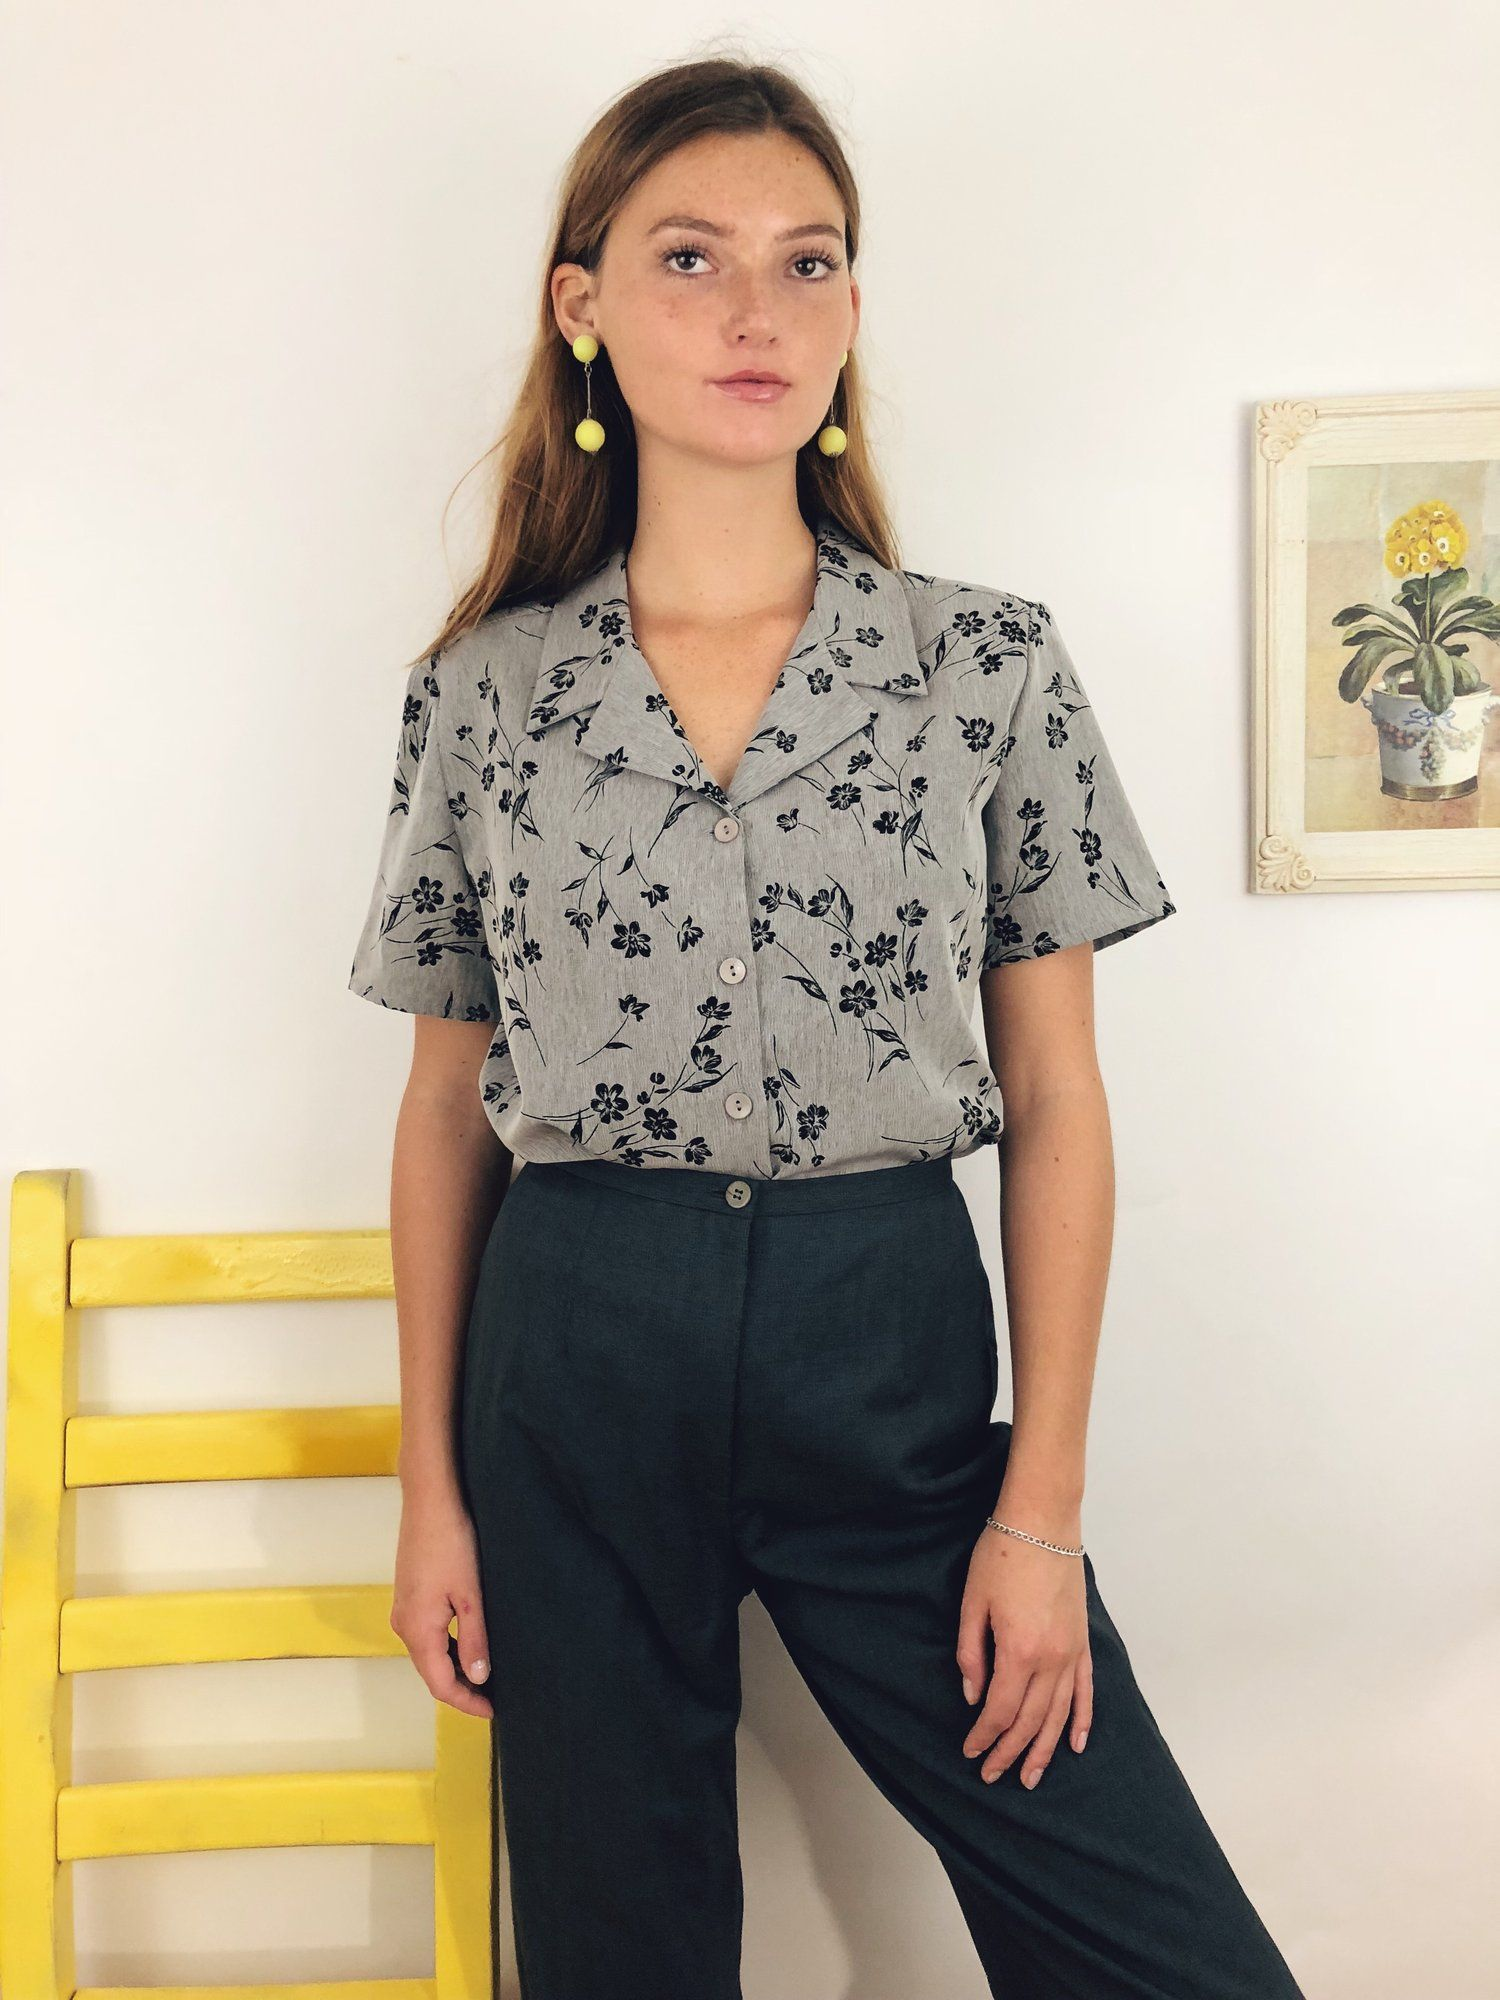 87bf24582268aa A lovely vintage short sleeve with a stunning floral design on a grey  background. A retro lover s dream. fall outfit ideas